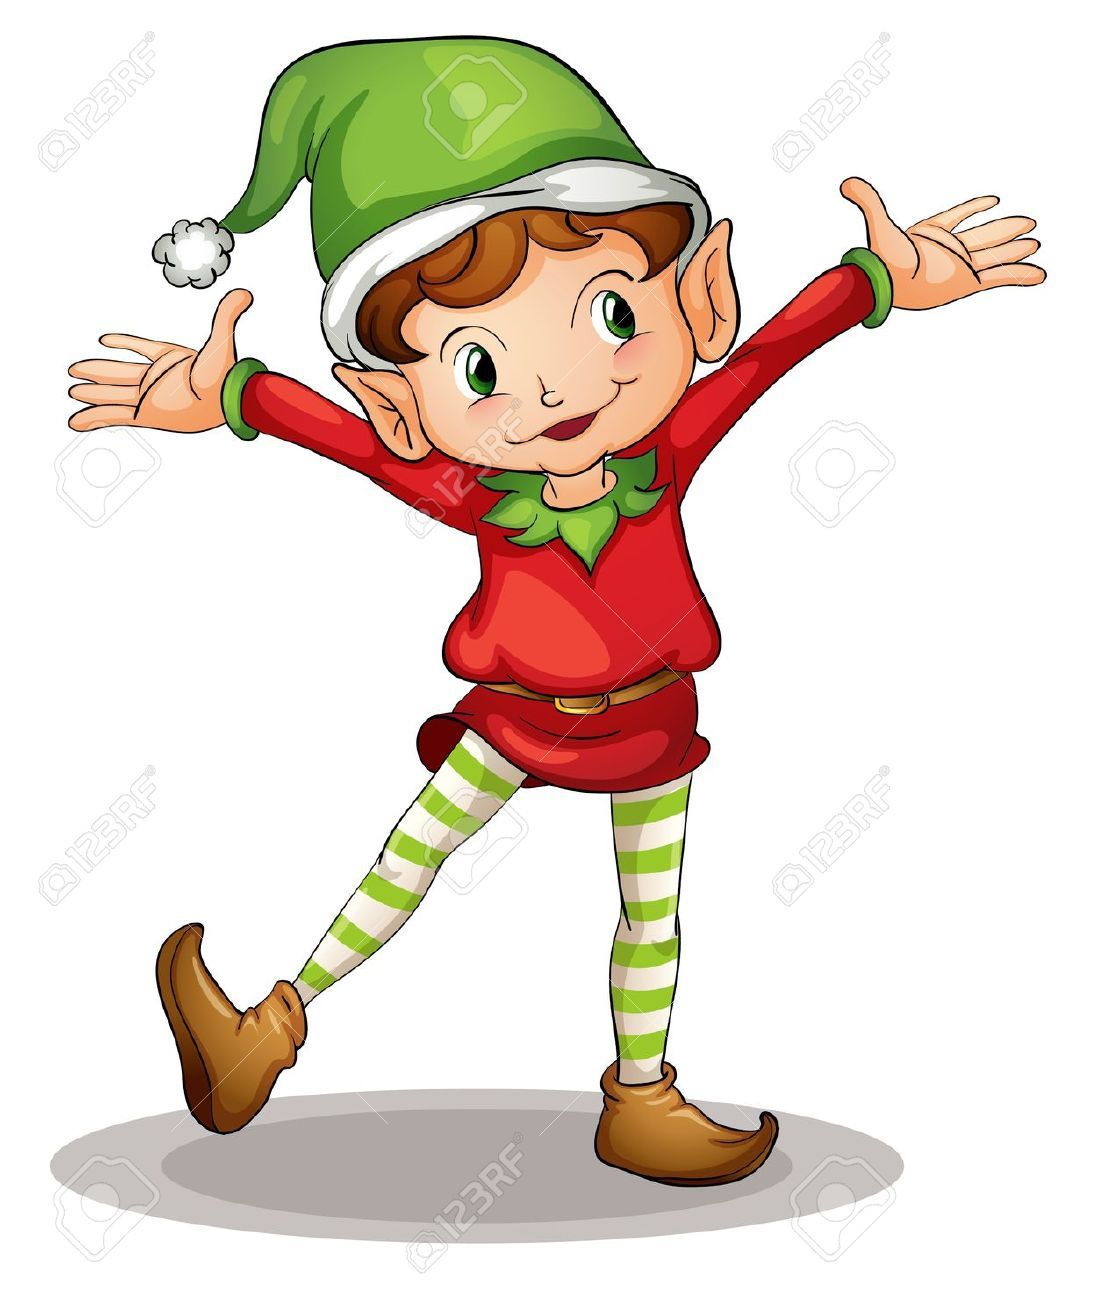 illustration of a christmas elf royalty free cliparts vectors and stock illustration pic 13930683  [ 1112 x 1300 Pixel ]